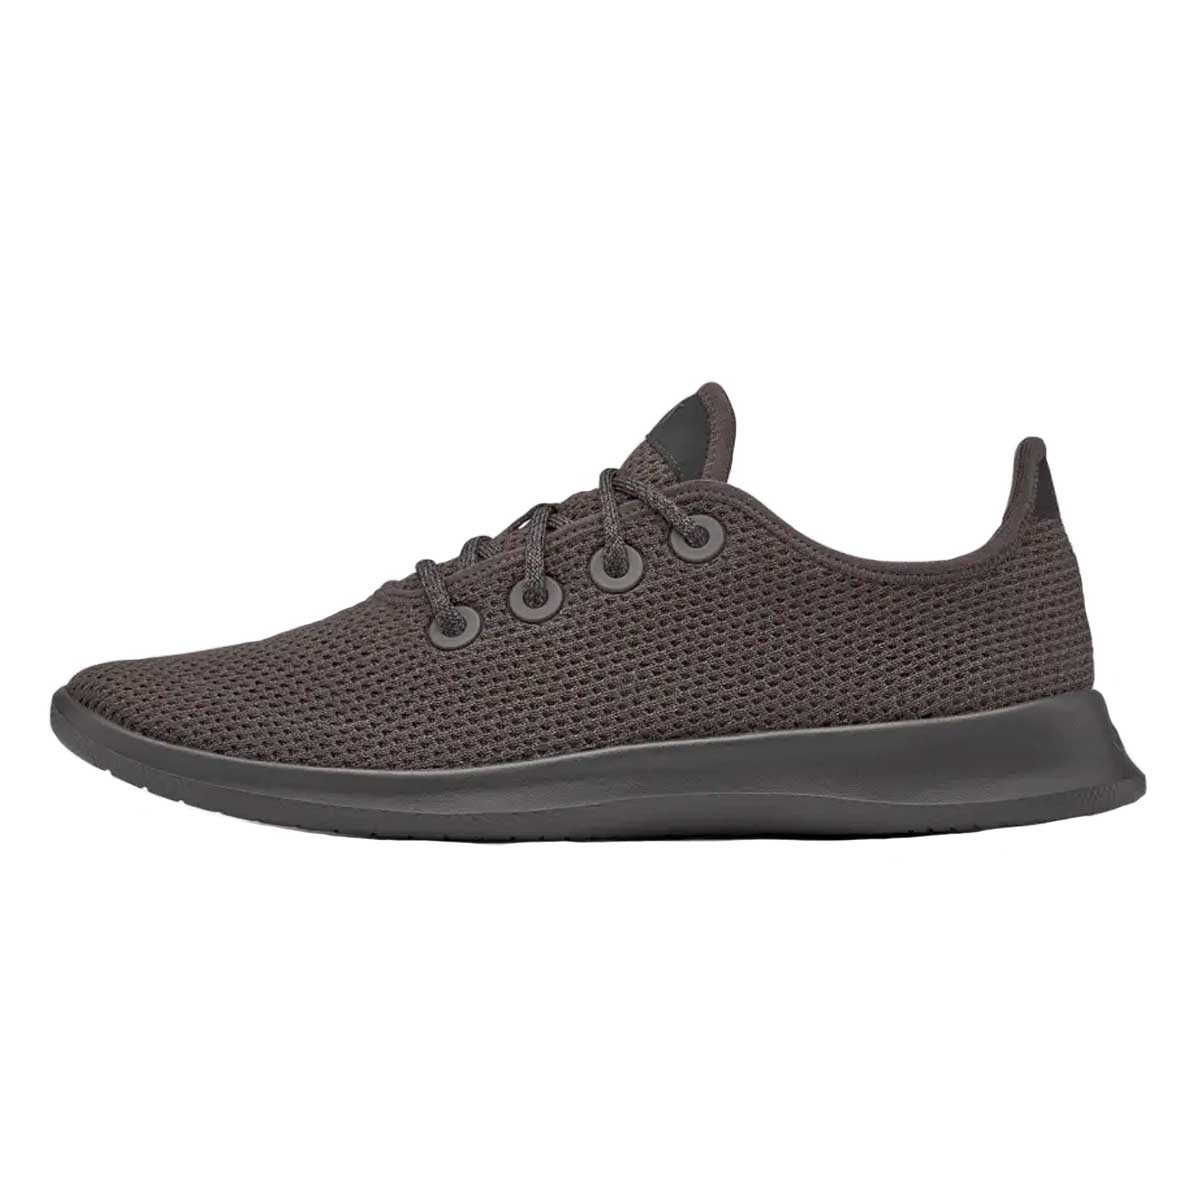 Allbirds treenrunners charcoal